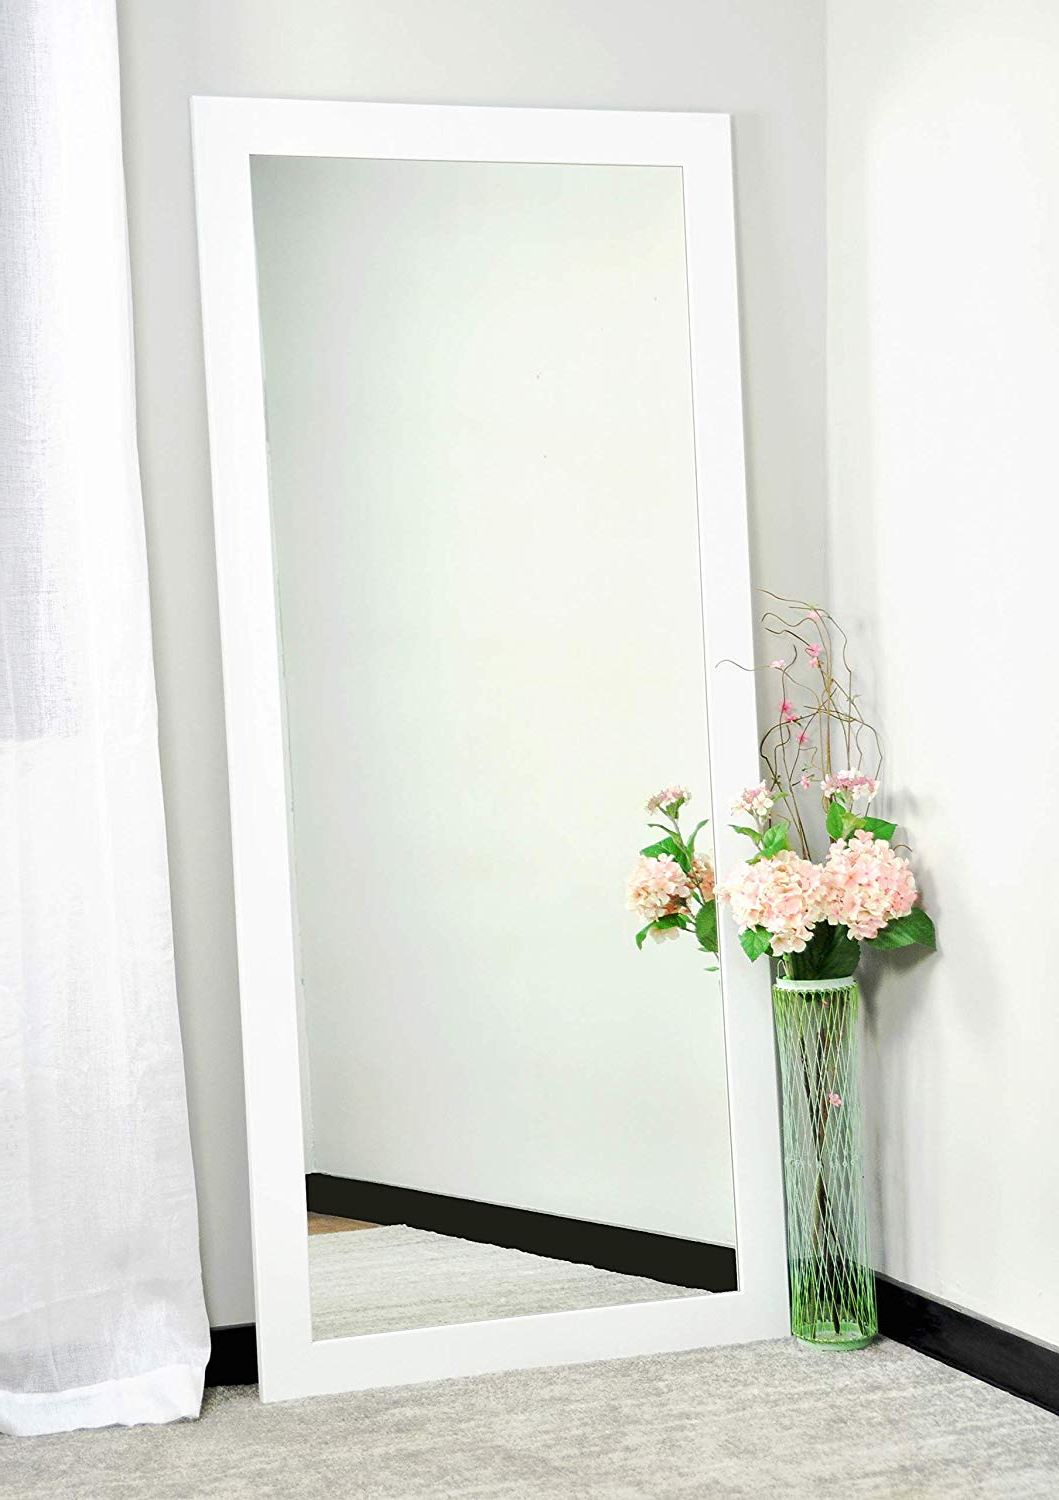 "Huge Wall Mirrors With Favorite Brandtworks, Llc Bm003t Oversized Wall Mirror, 32"" X 71"", White,32"" X 71"" (View 5 of 20)"